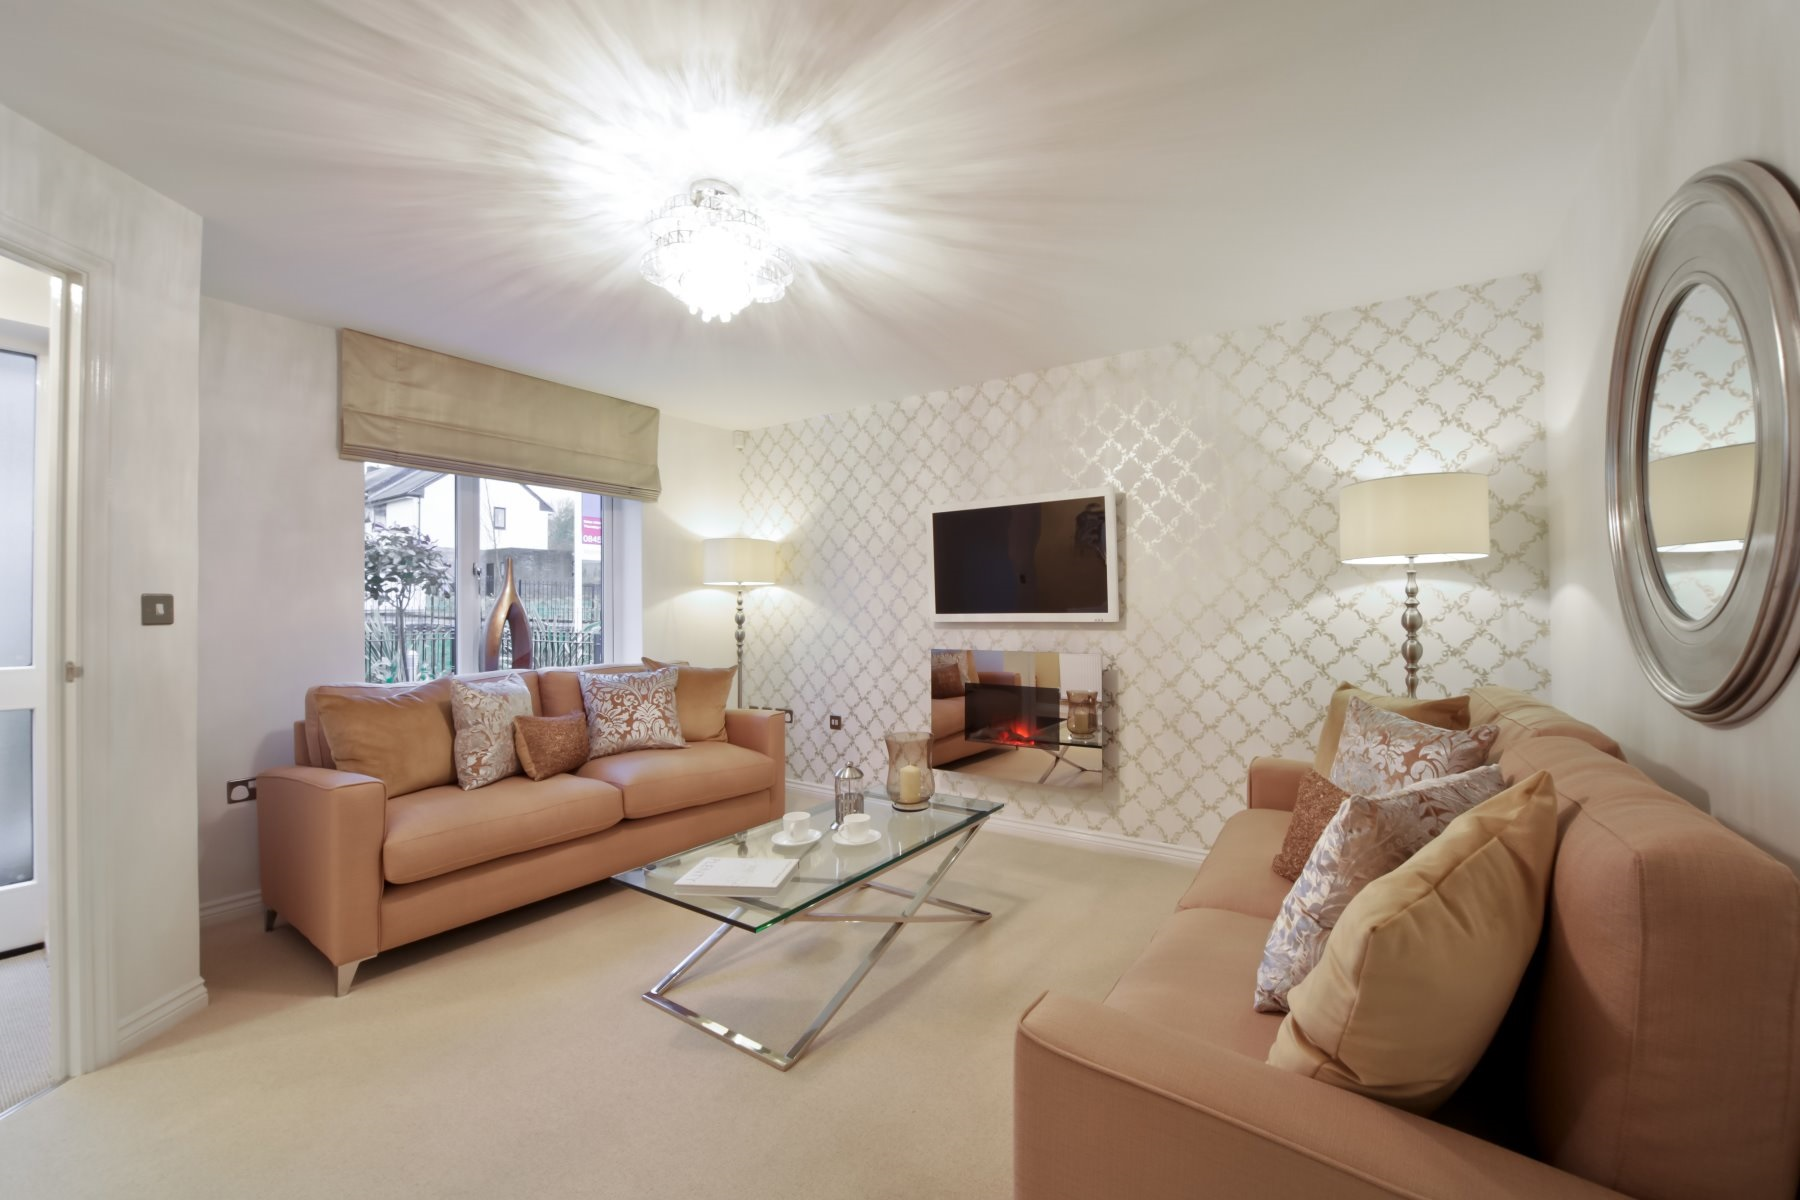 Earlsford Showhome Living Room - Sandbrook View